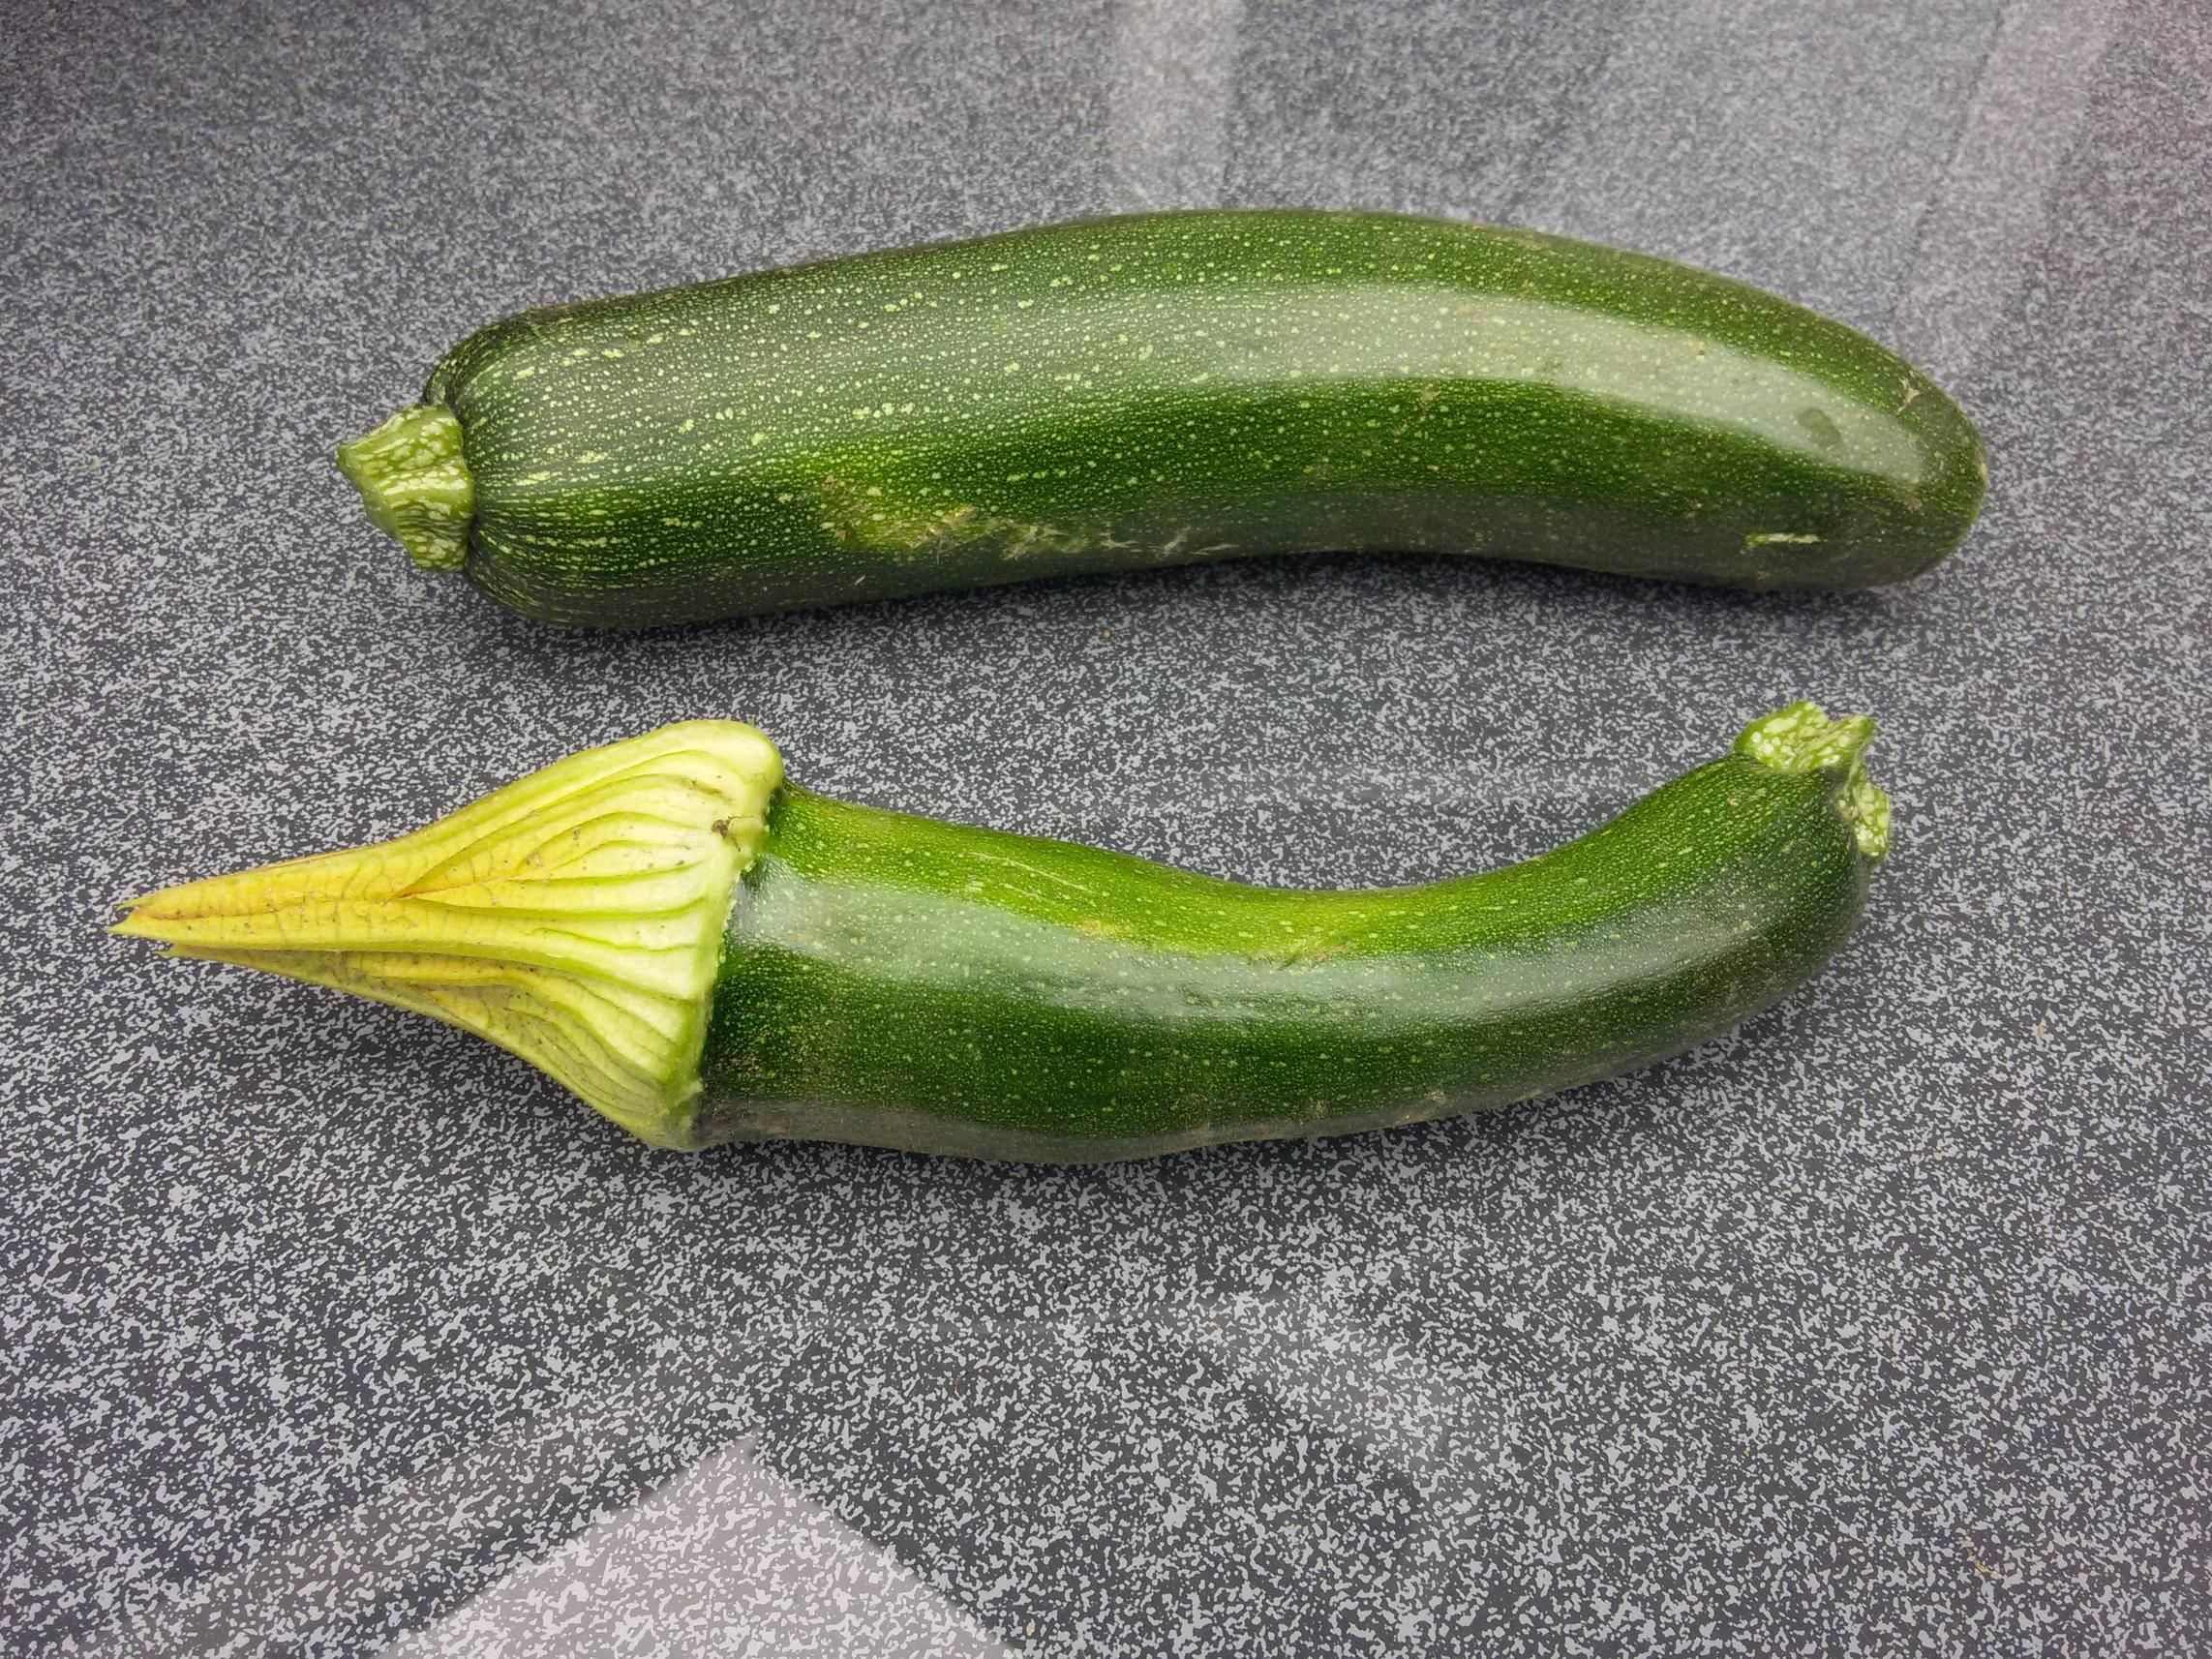 This zucchini retained its flower.